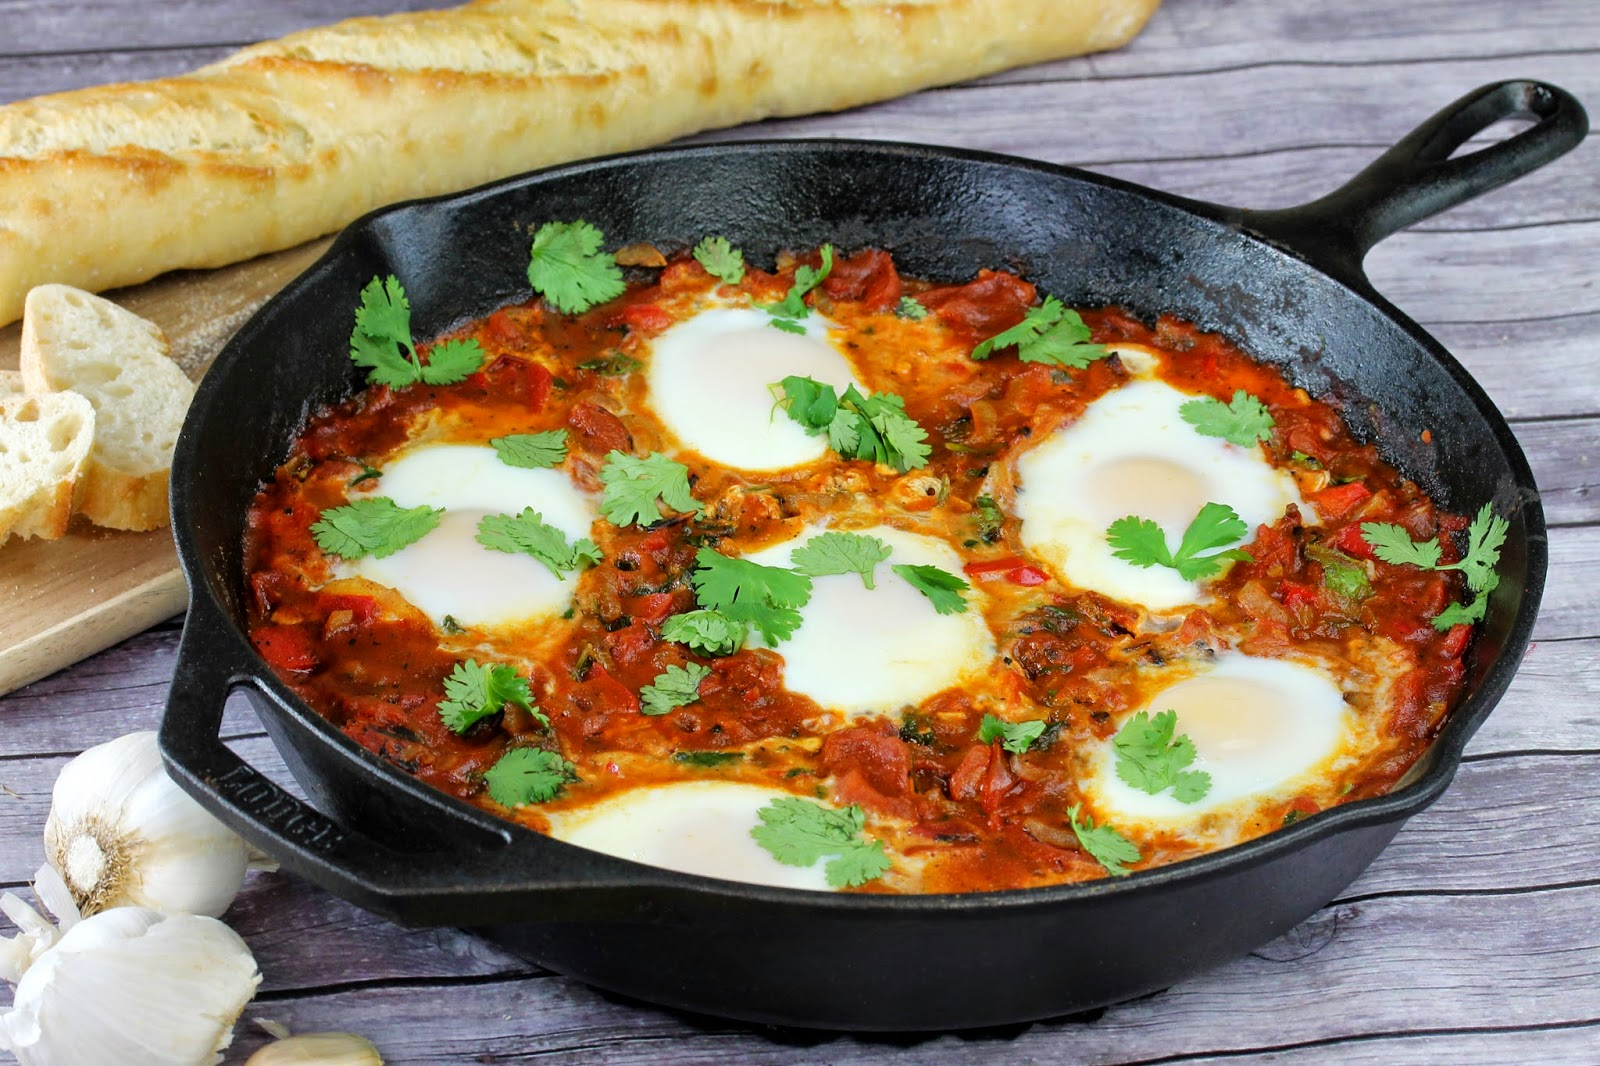 The Stay At Home Chef: Israeli Shakshuka - Eggs in A Spicy Tomato Stew